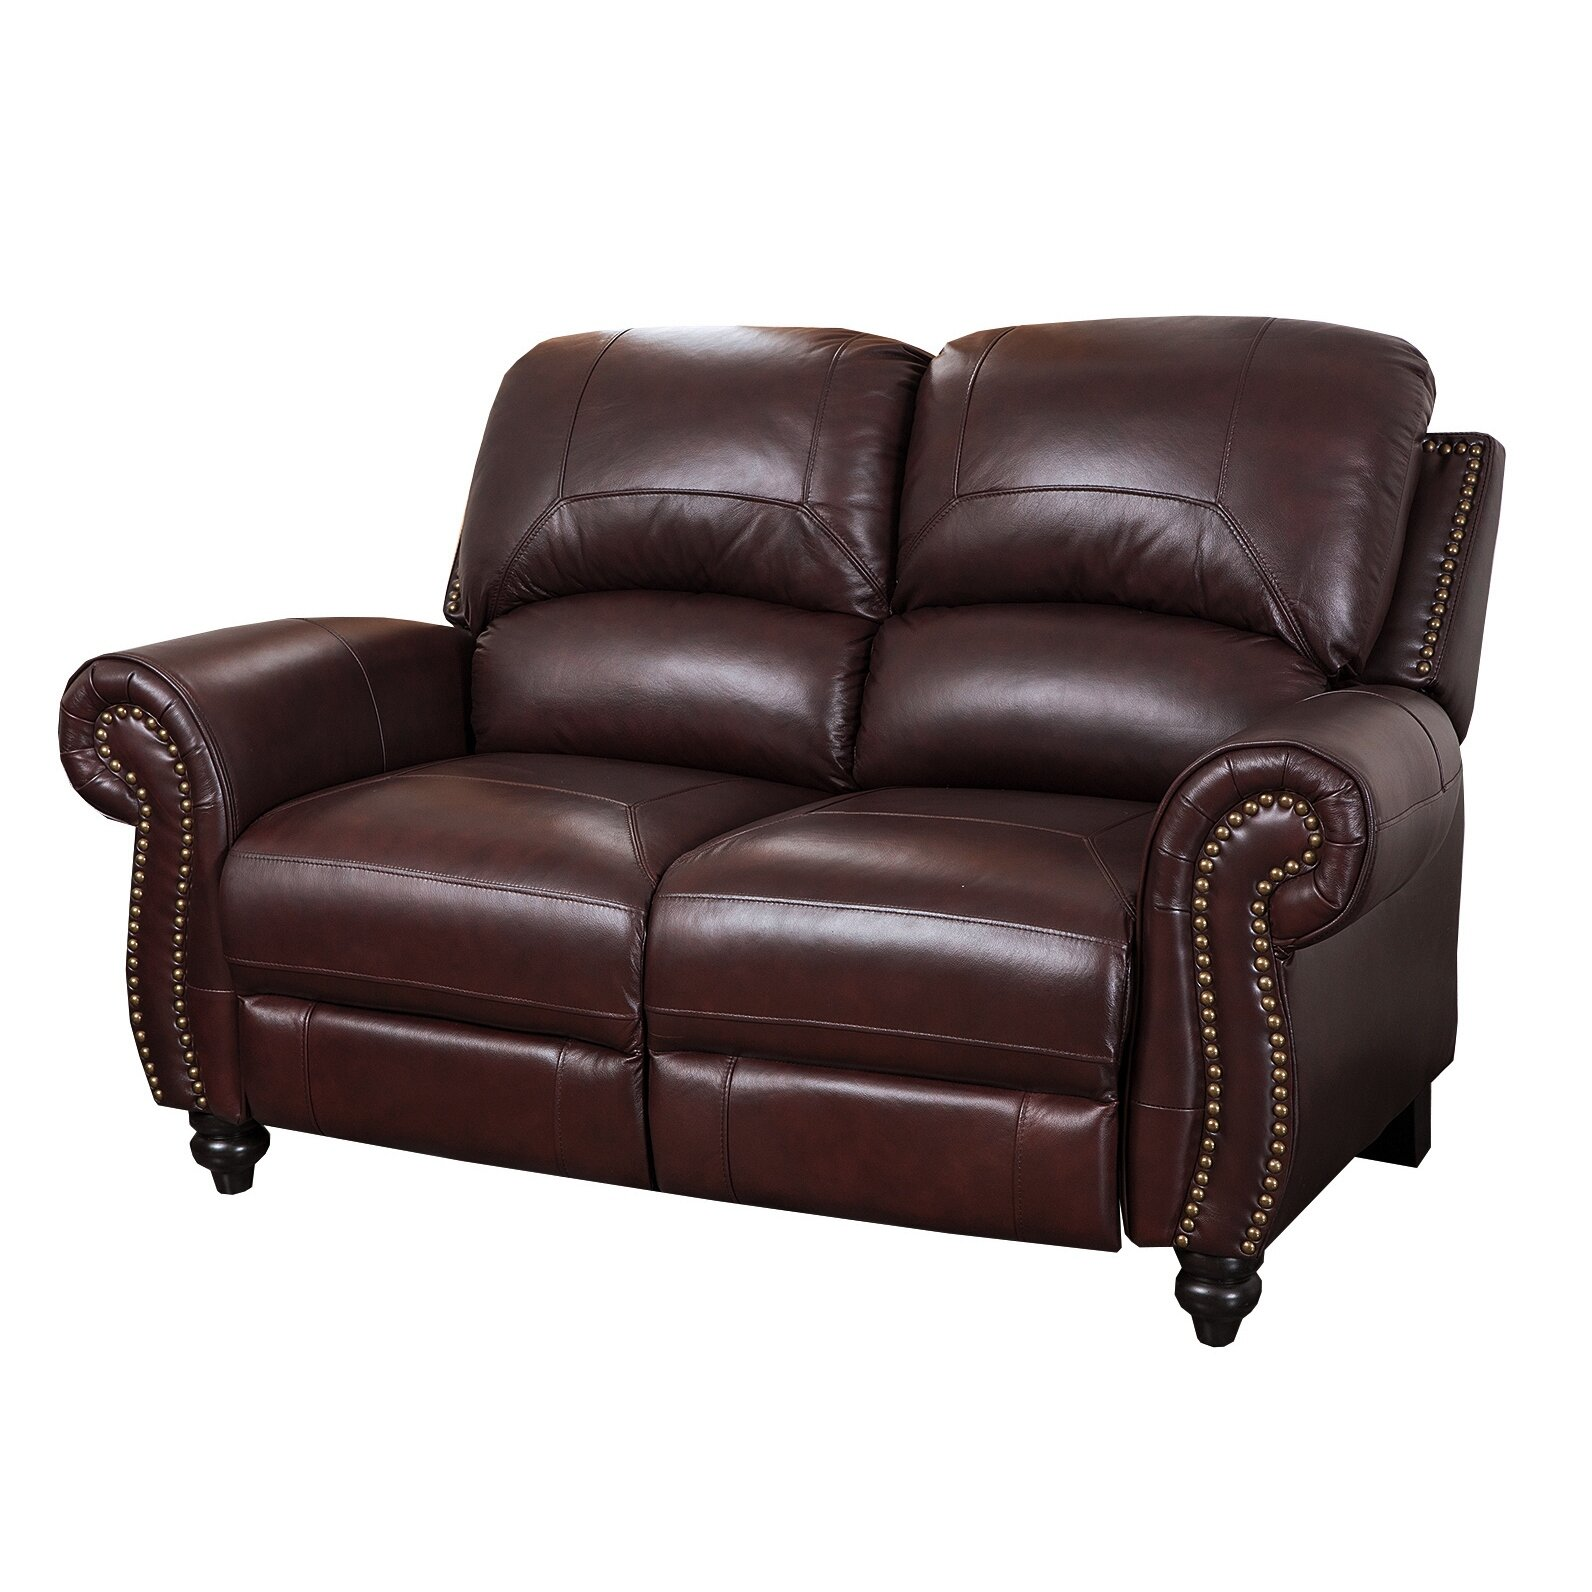 Darby Home Co Kahle Leather Reclining Loveseat Reviews Wayfair